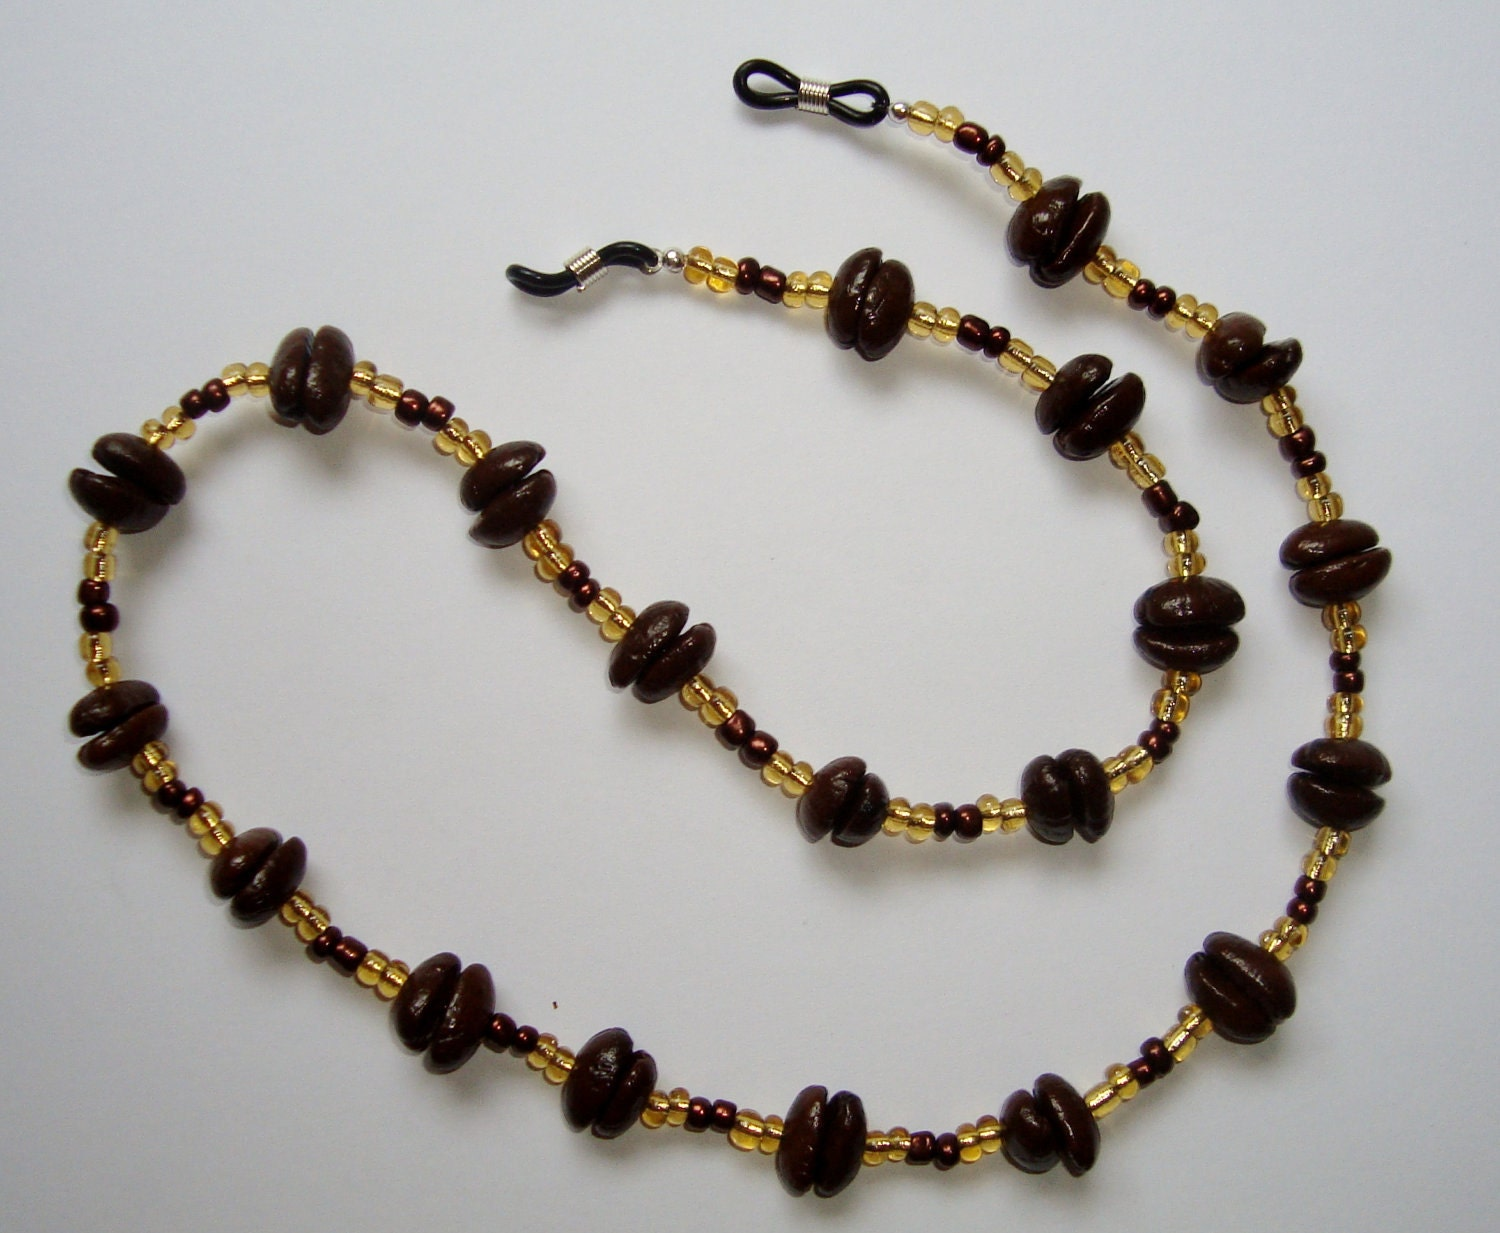 Eyeglass Holder Necklace handmade of Real Coffee Beans